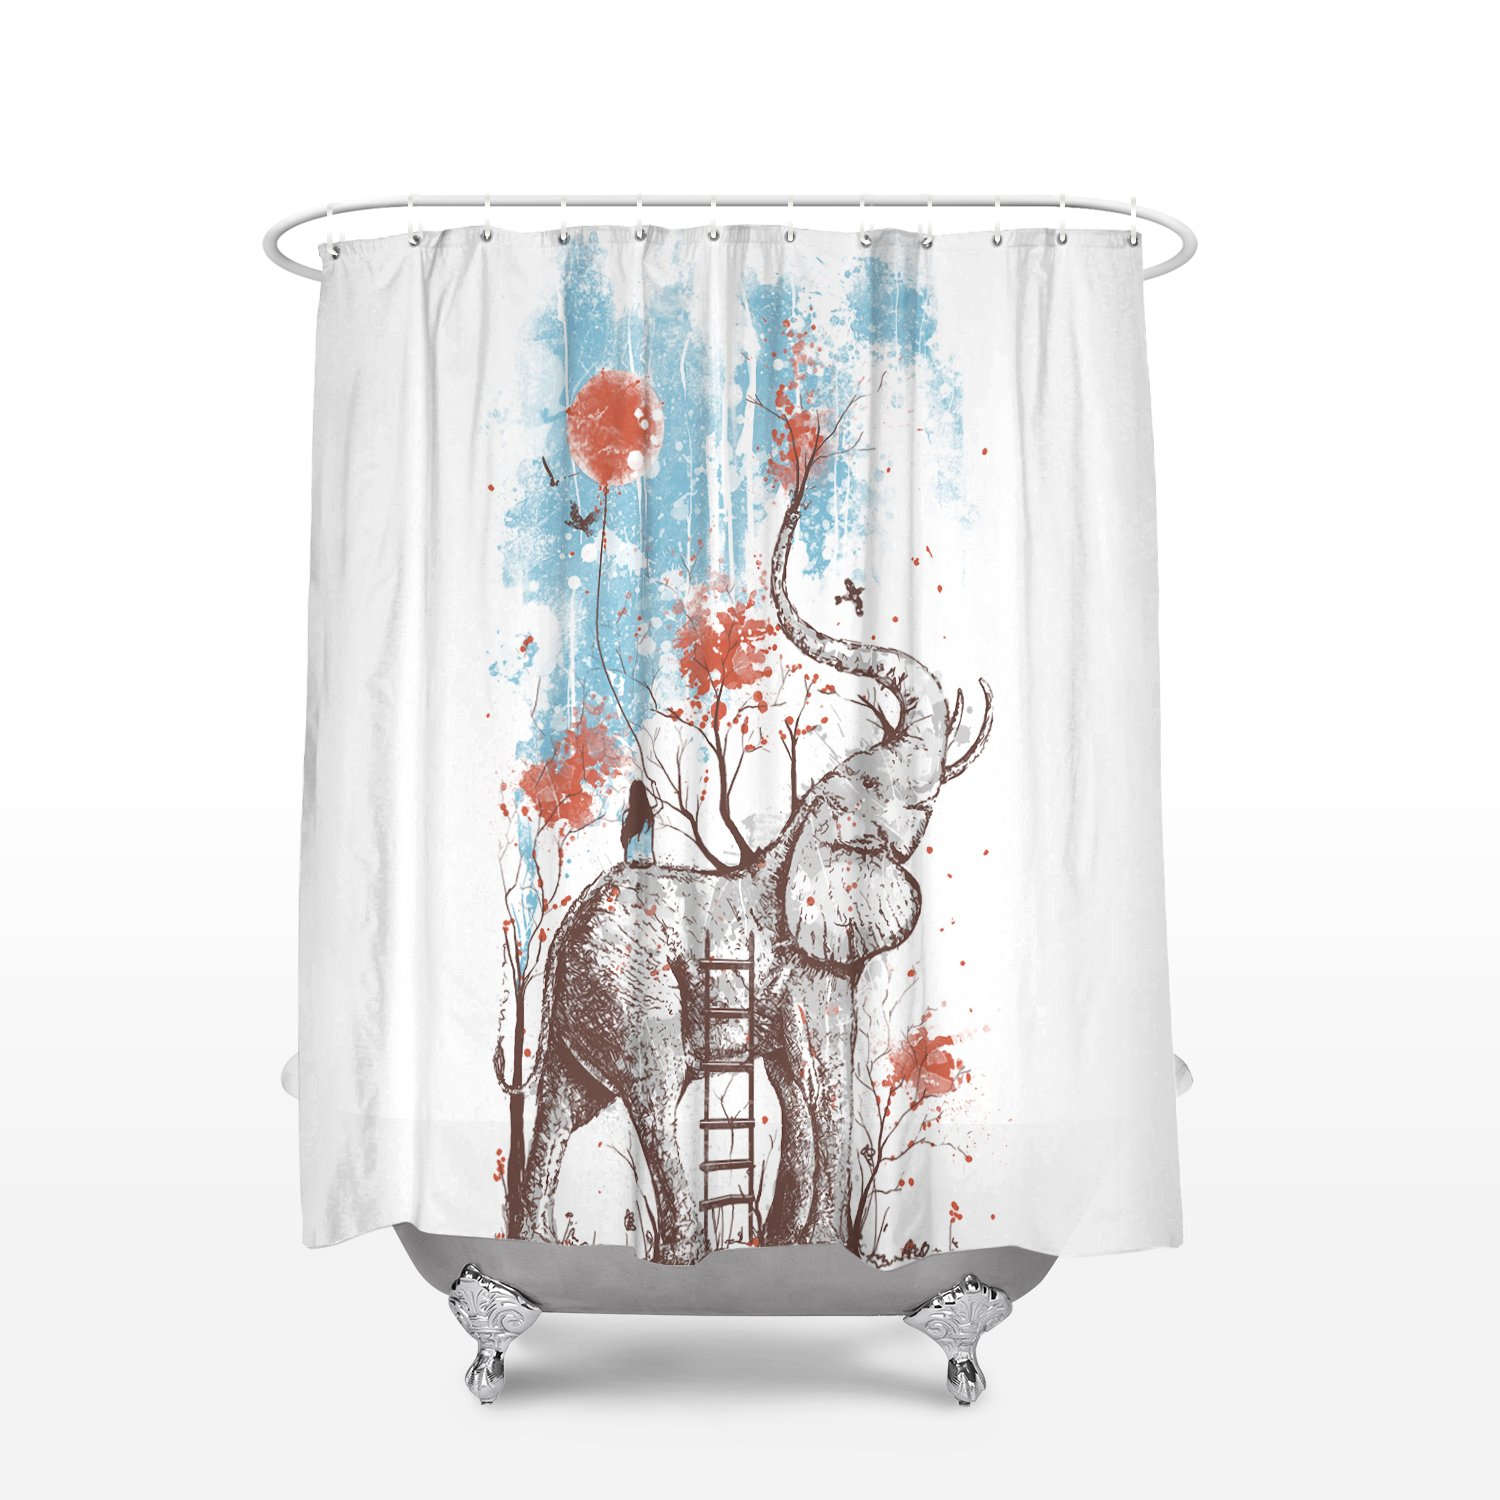 Karola Cute Elephant Balloon Girl Shower Curtain Waterproof Polyester And Mildew Resistant Fabric Bath Curtains Liner Home Art Paiting Tree Grass White